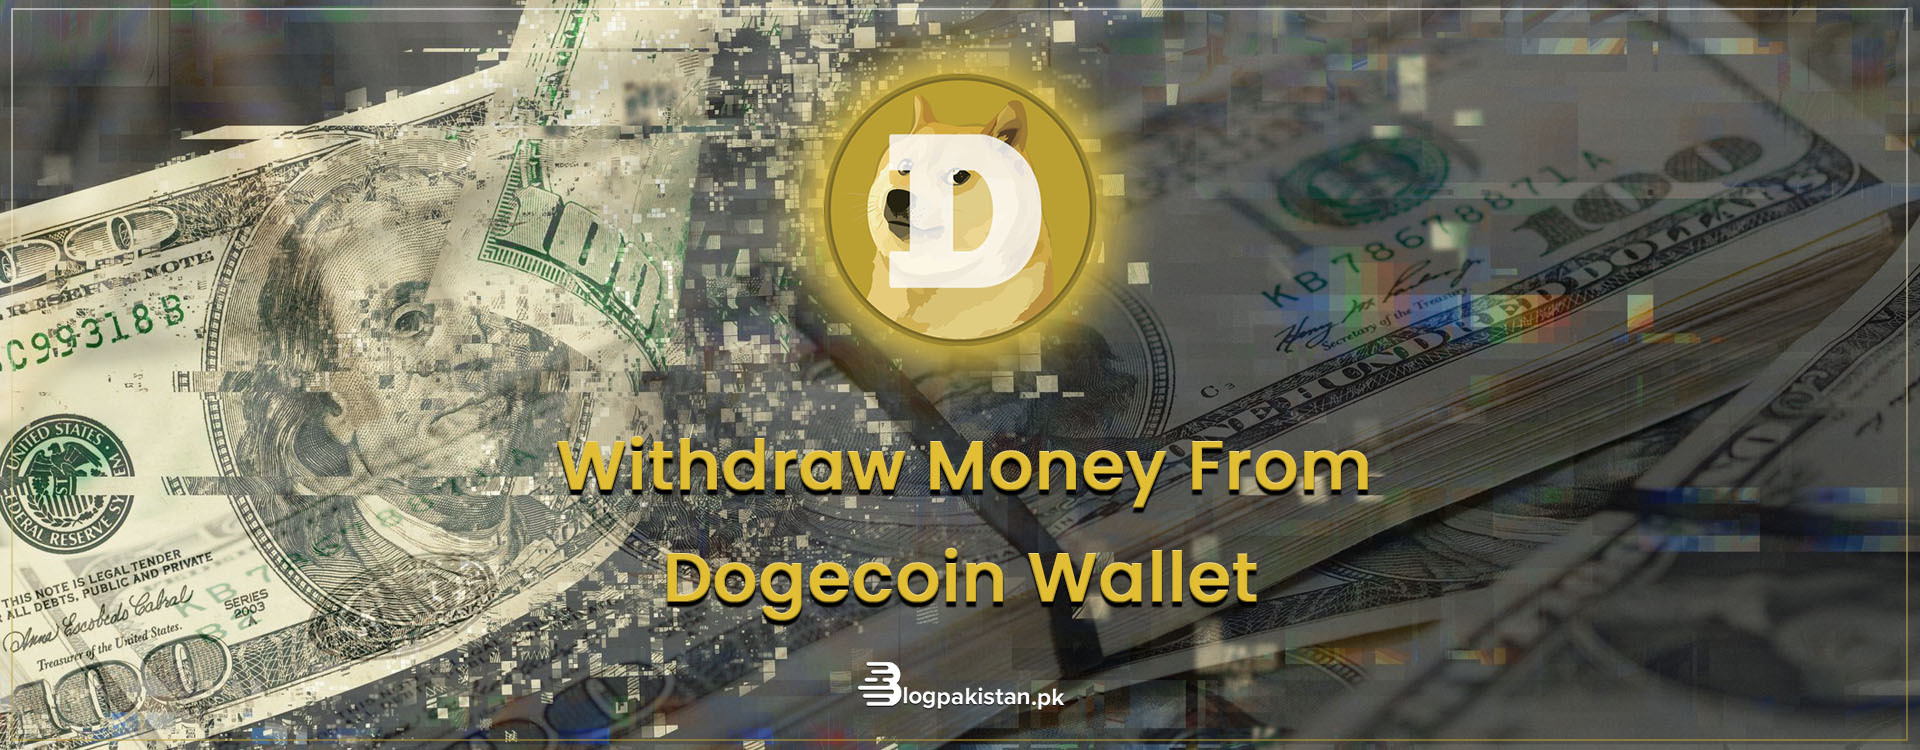 How to Withdraw Money From Dogecoin Wallet?